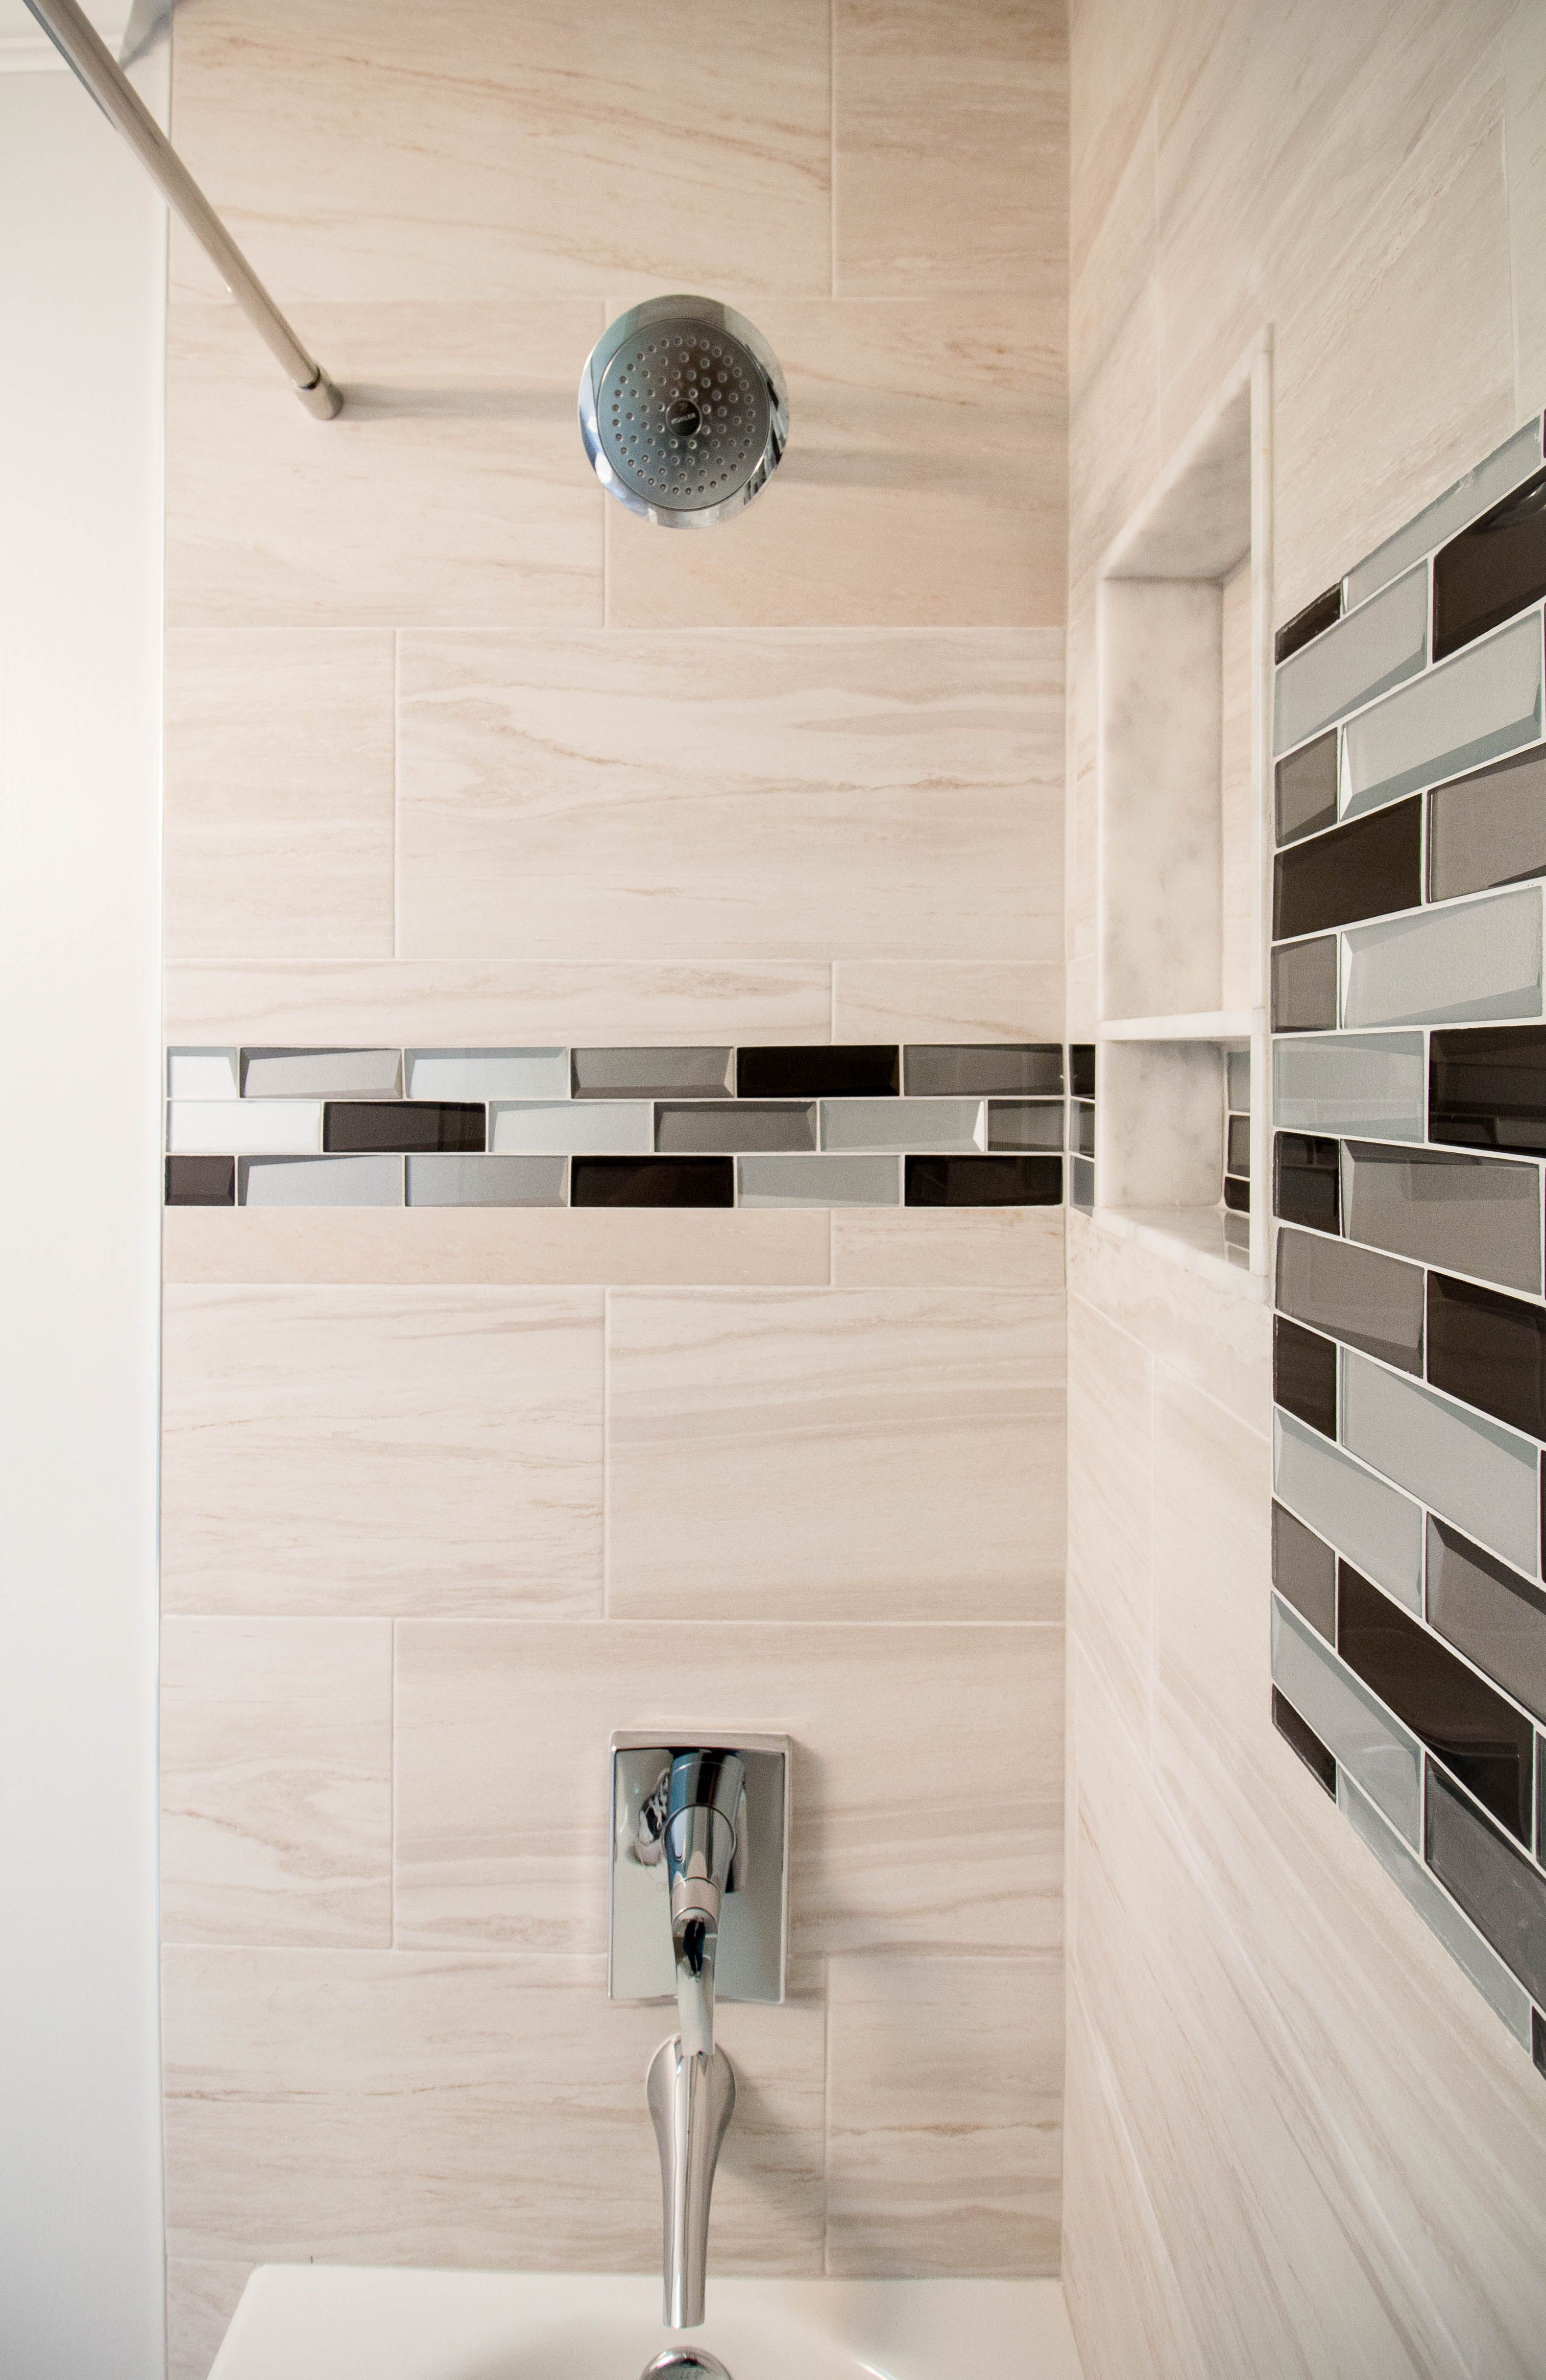 common making supply of installing accessible rough arm kit home in size pictures bathroom design plumbing fixtures full diagram heights easily marvelous shower piping inside problems fixturesshower